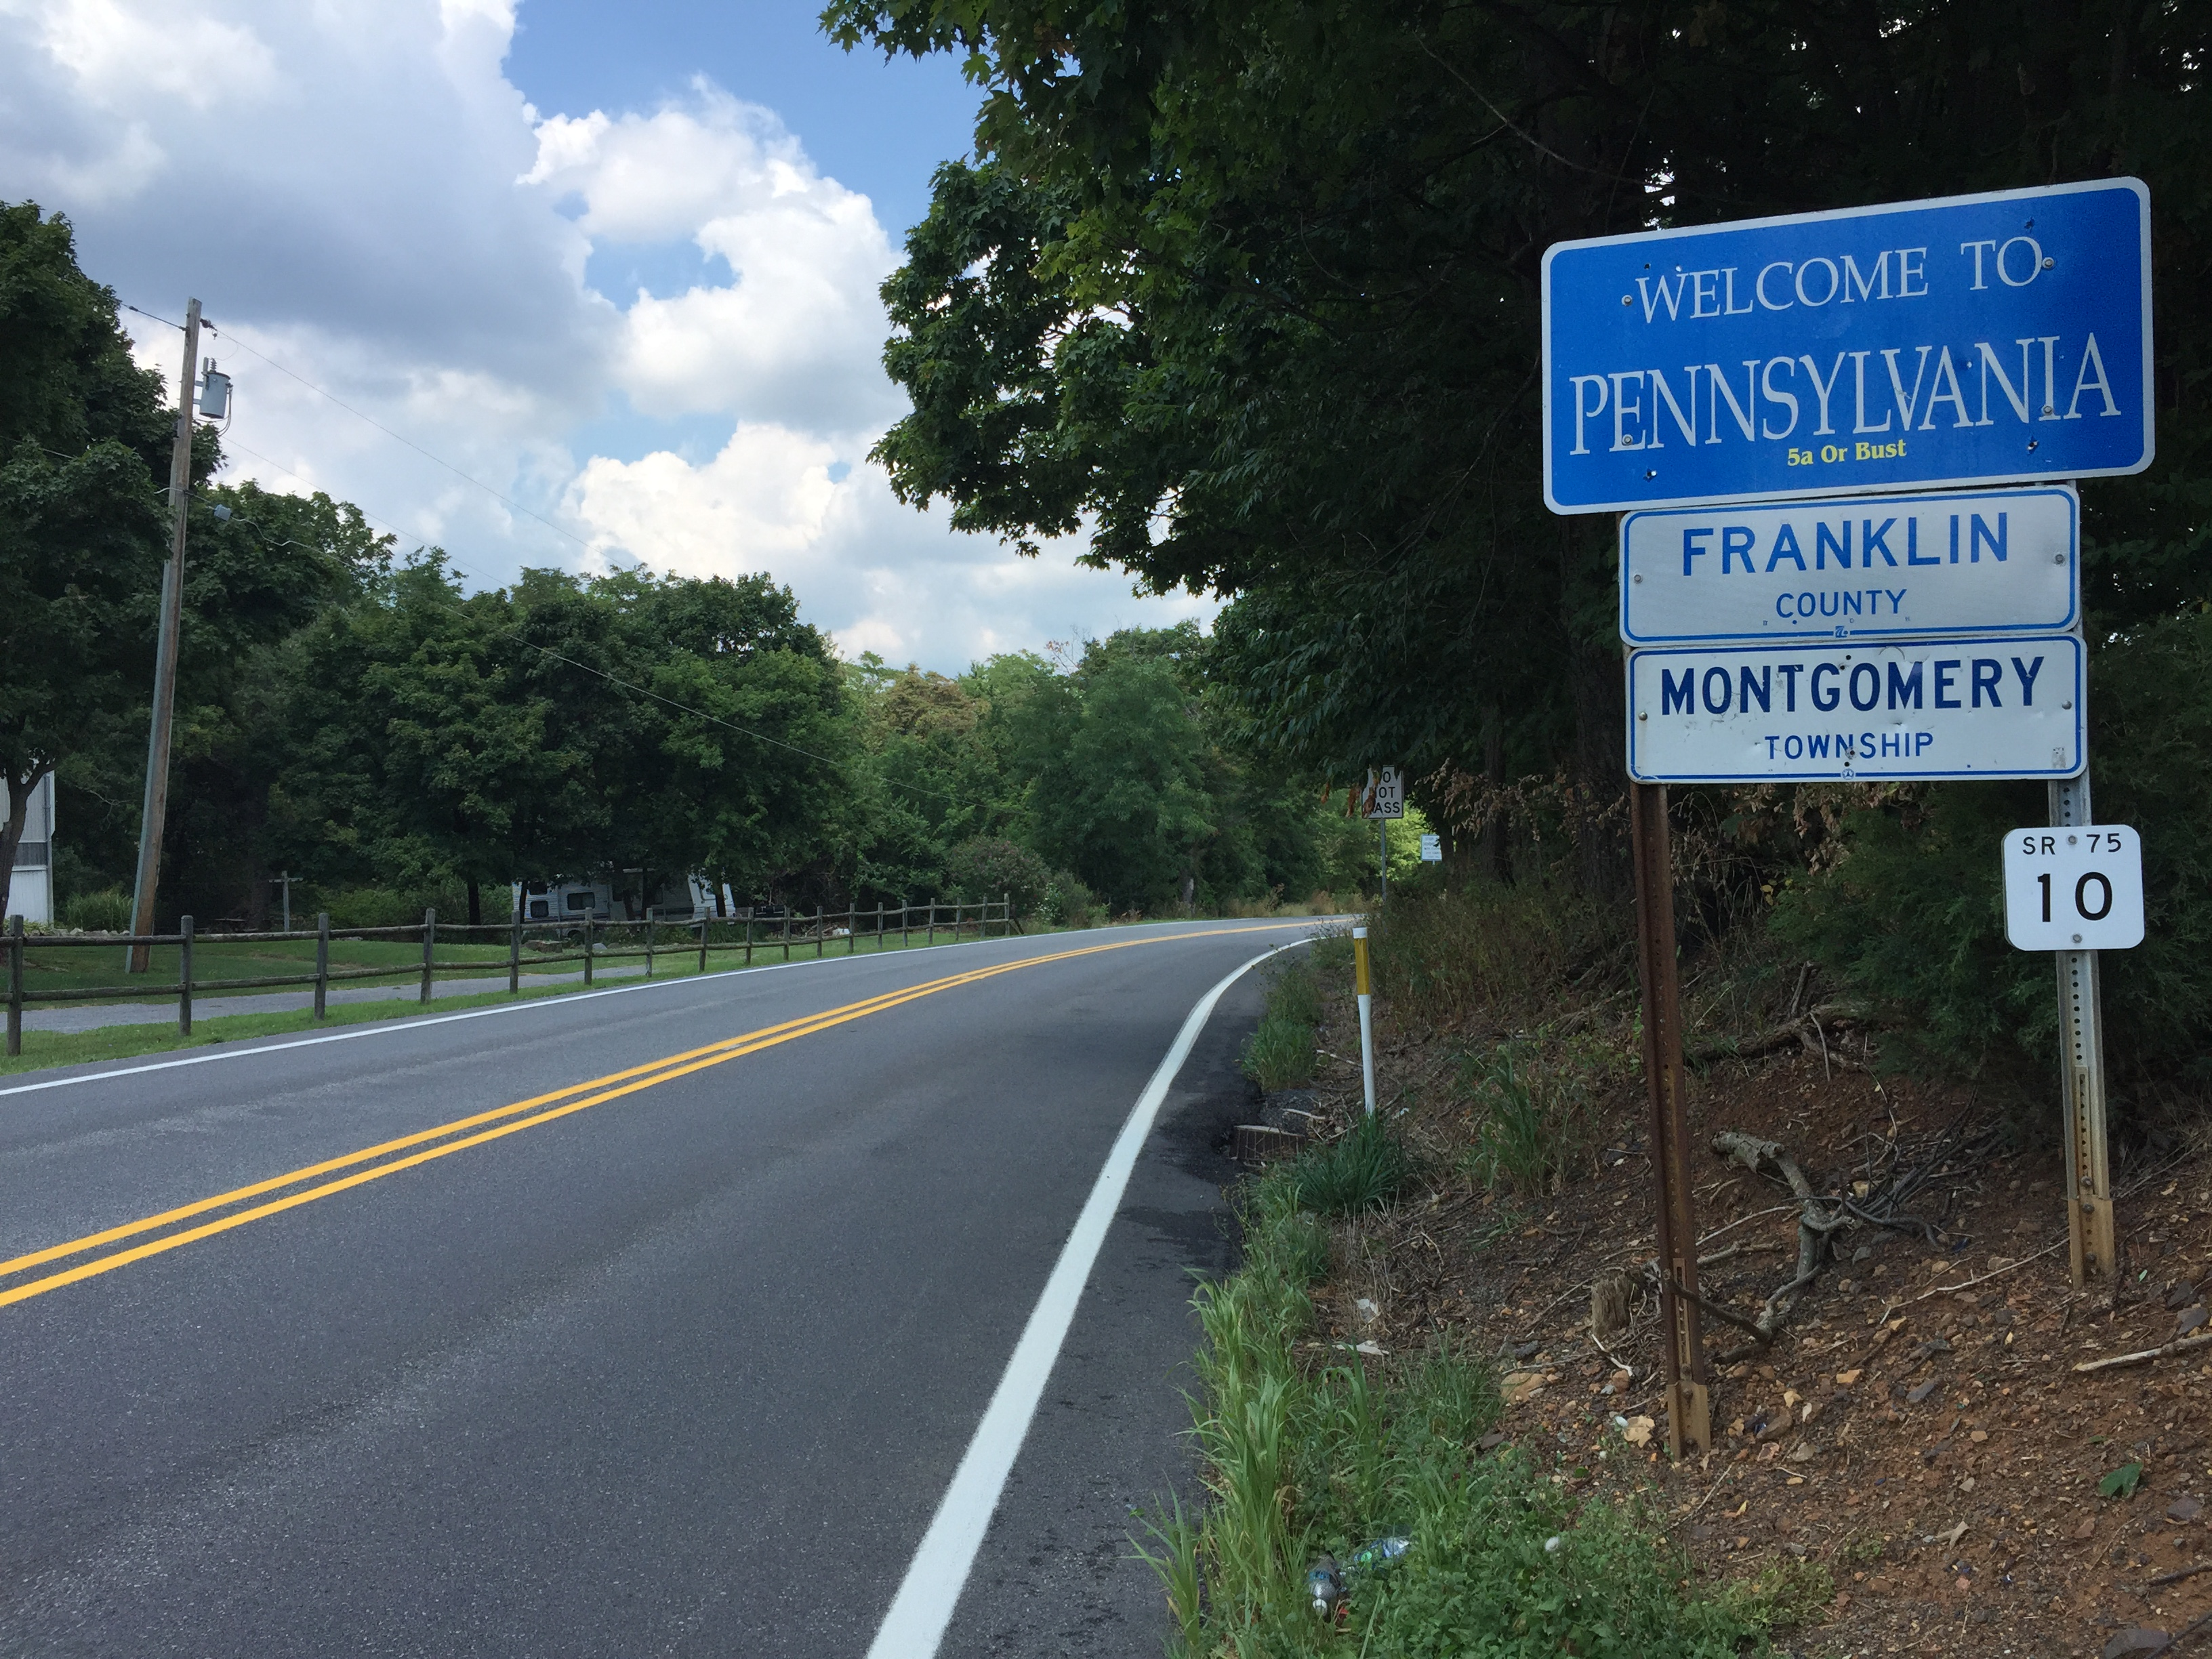 Montgomery Township to spend nearly $1 million on road projects